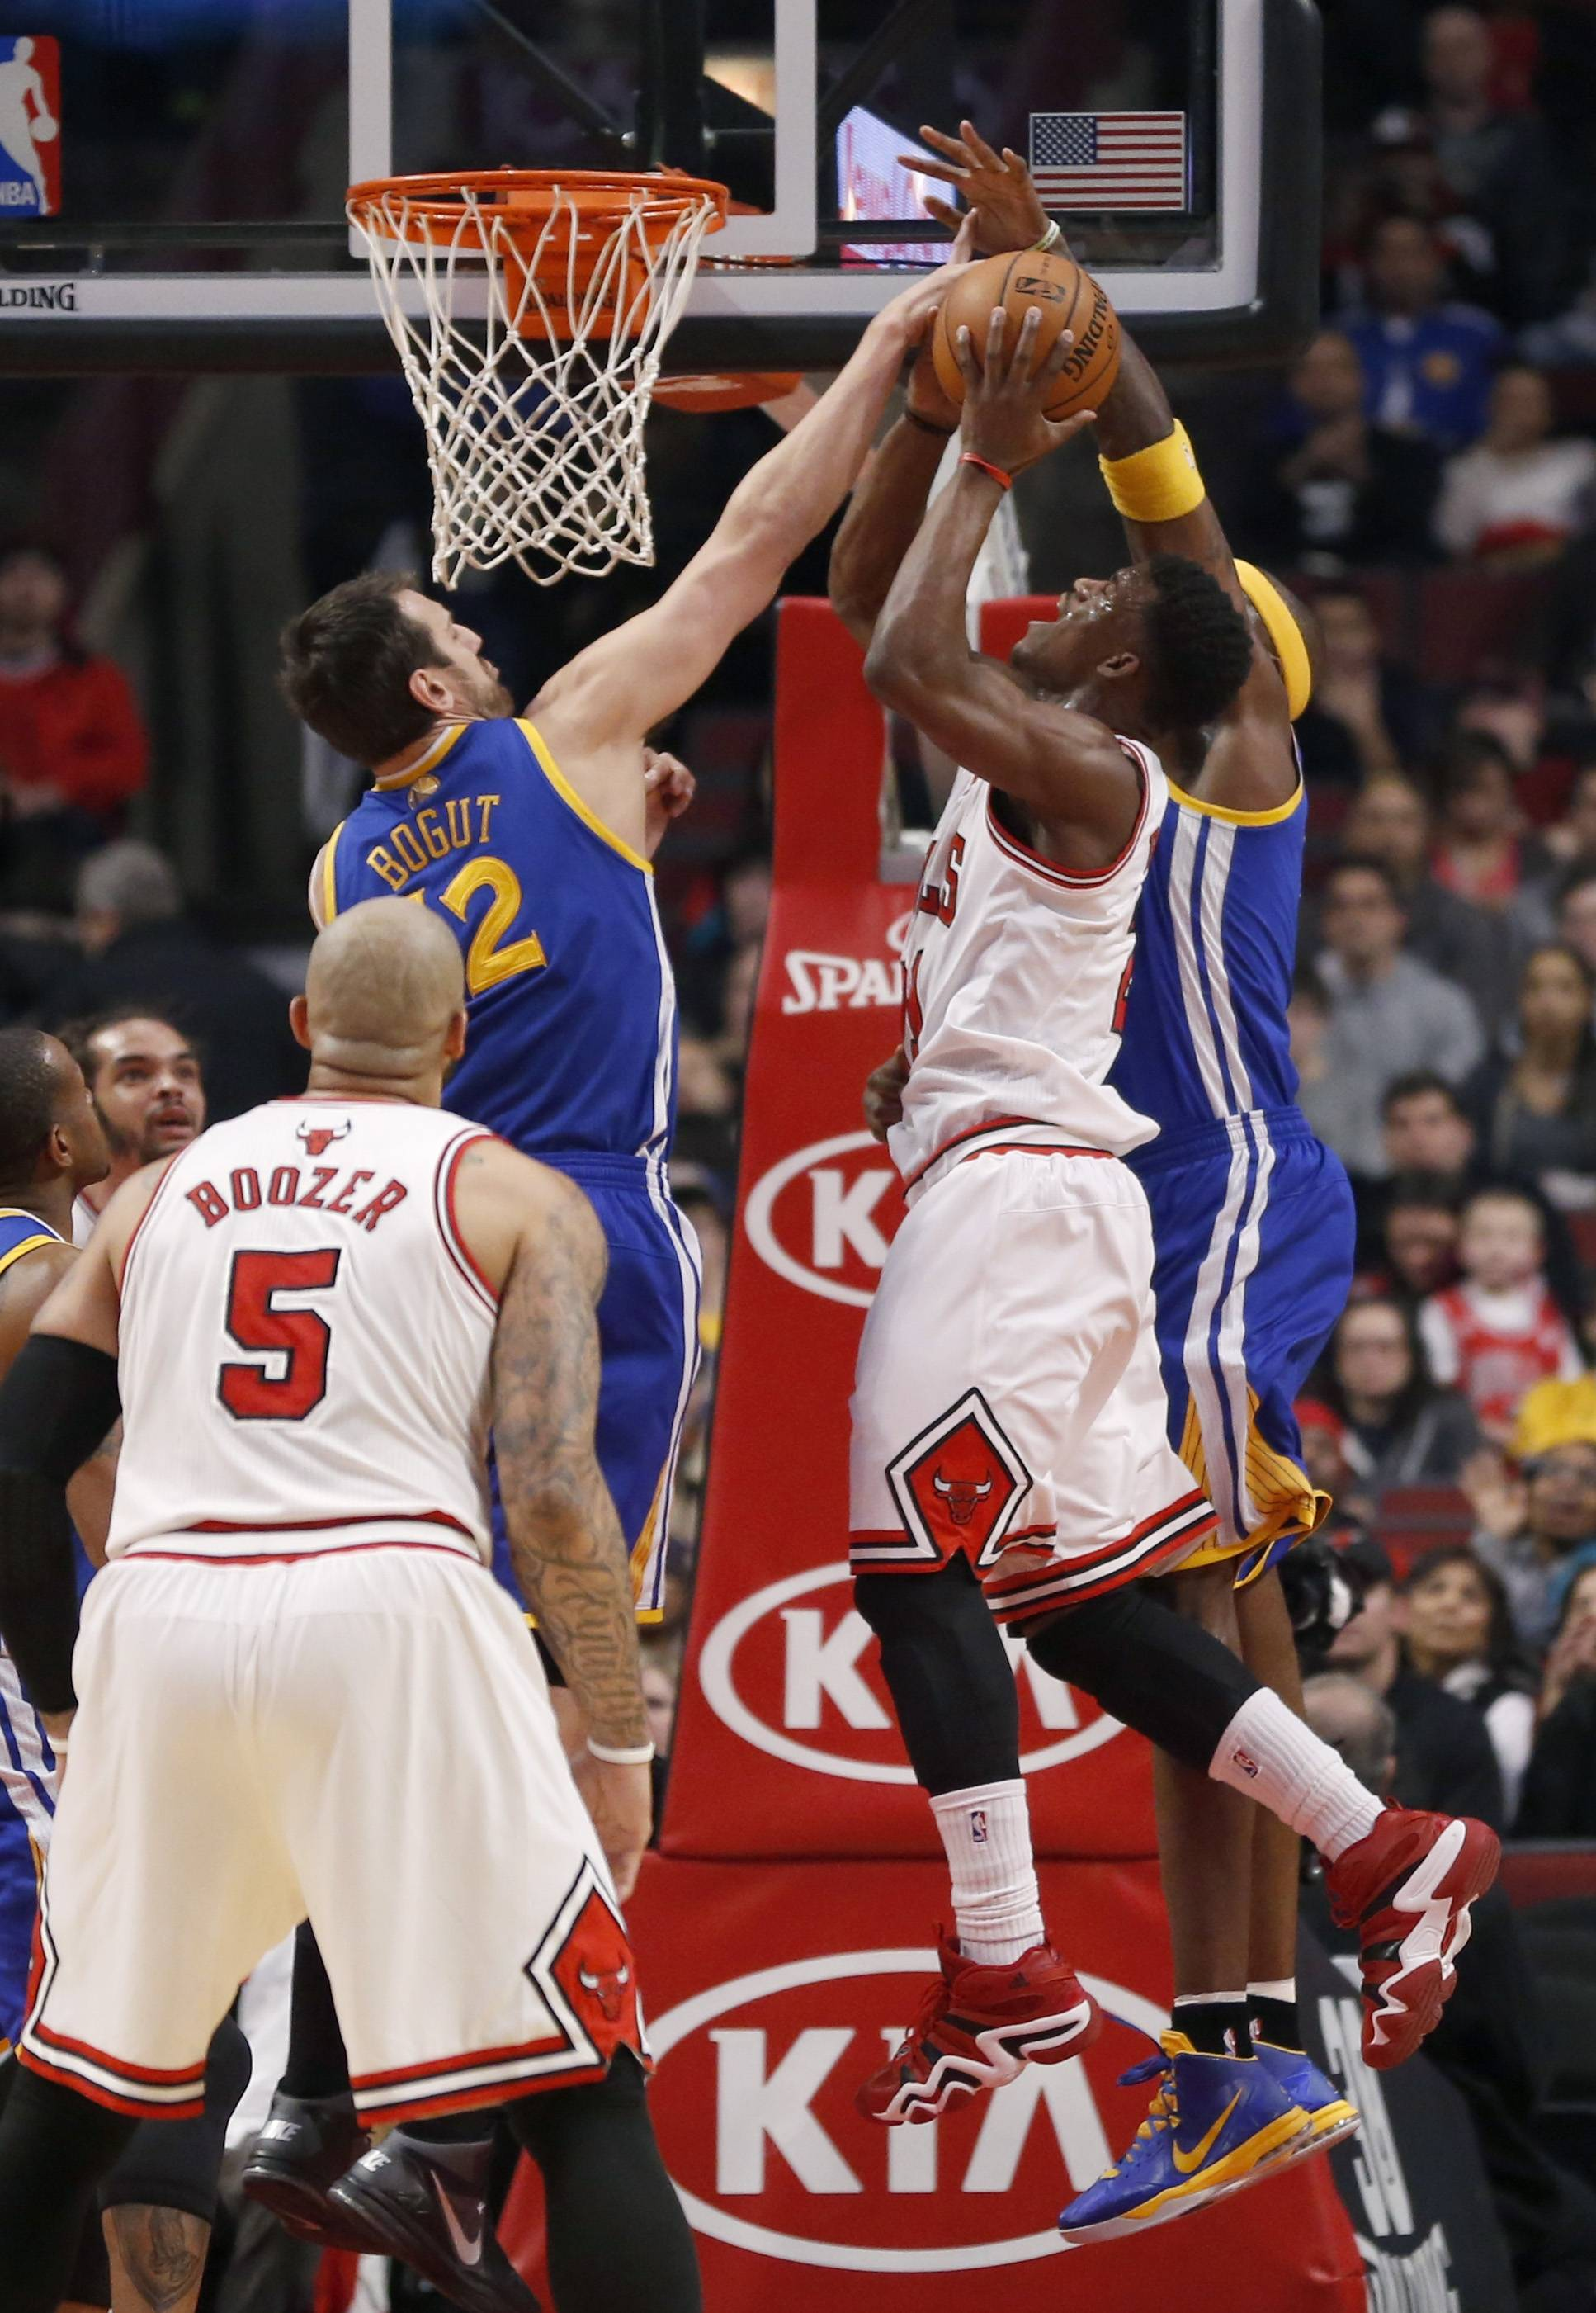 Chicago Bulls shooting guard Jimmy Butler (21) is fouled by Golden State Warriors center Jermaine O'Neal, right, as Andrew Bogut (12) also defends during the first half of an NBA basketball game, Wednesday, Feb. 26, 2014, in Chicago. Watching the play is Carlos Boozer (5).